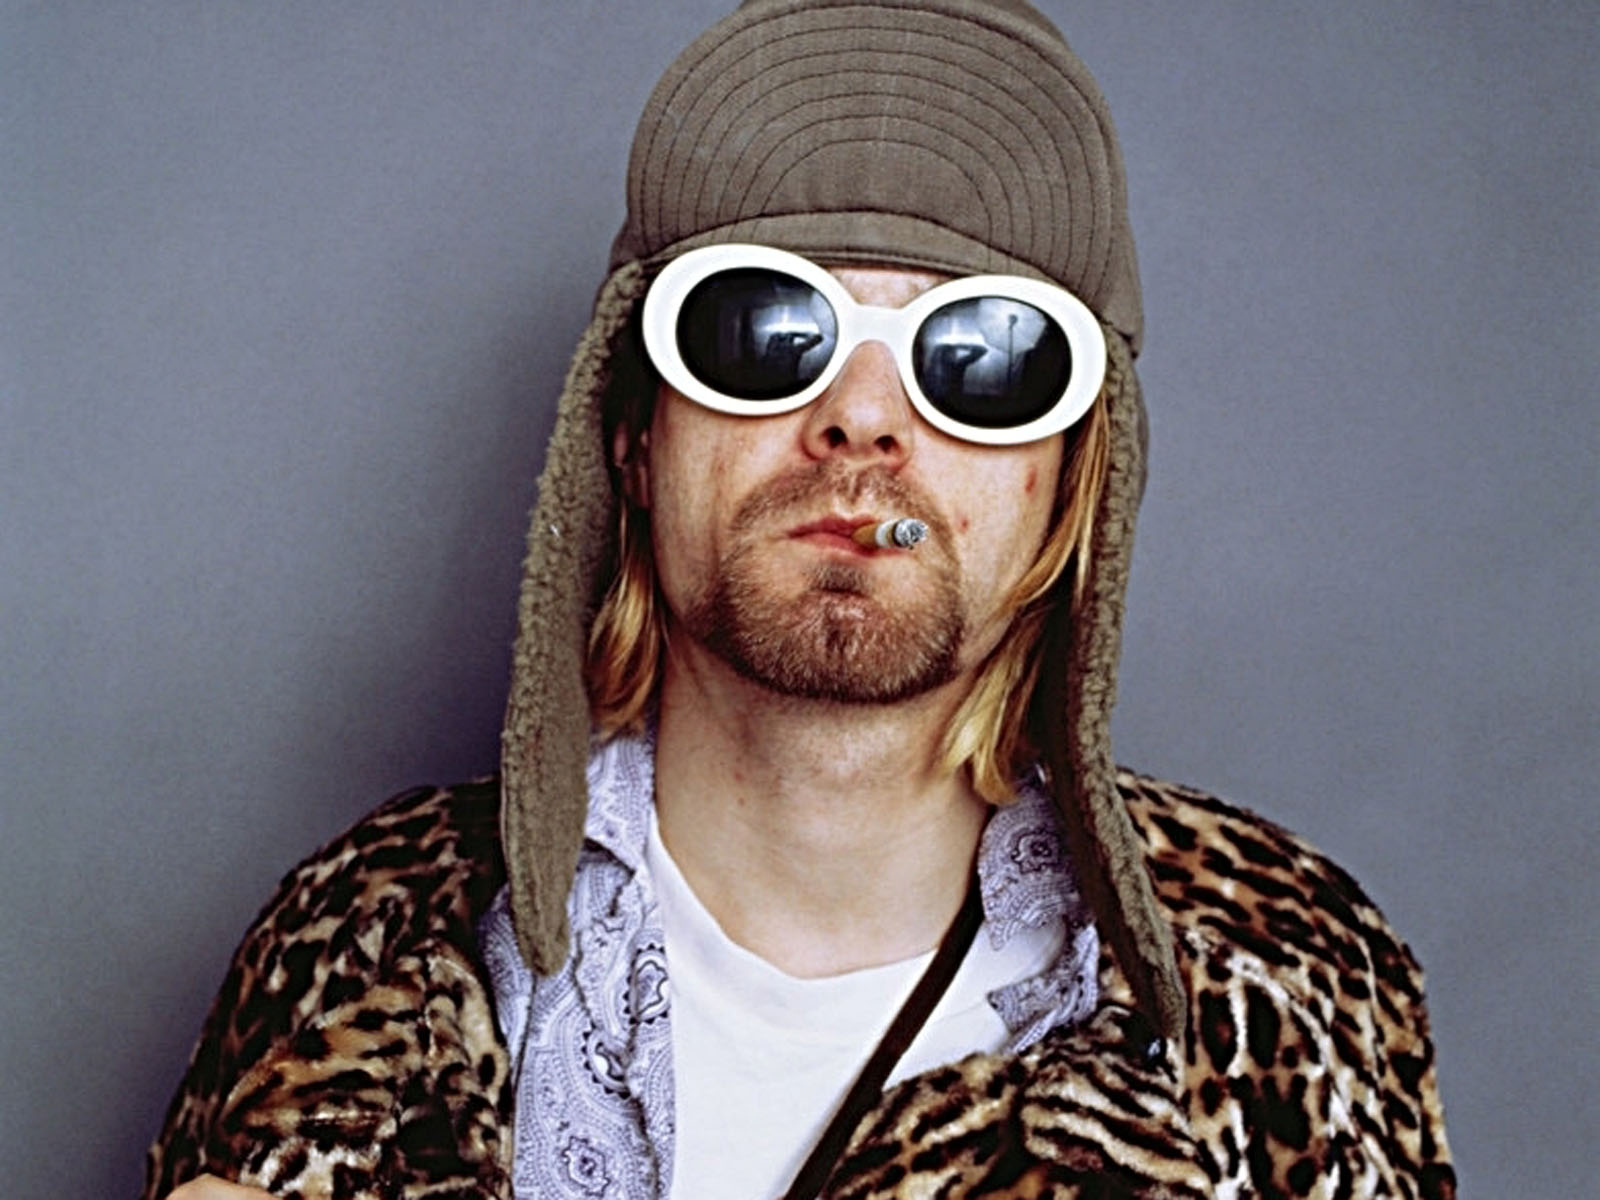 Kurt Cobain Wallpaper 1600x1200 50116